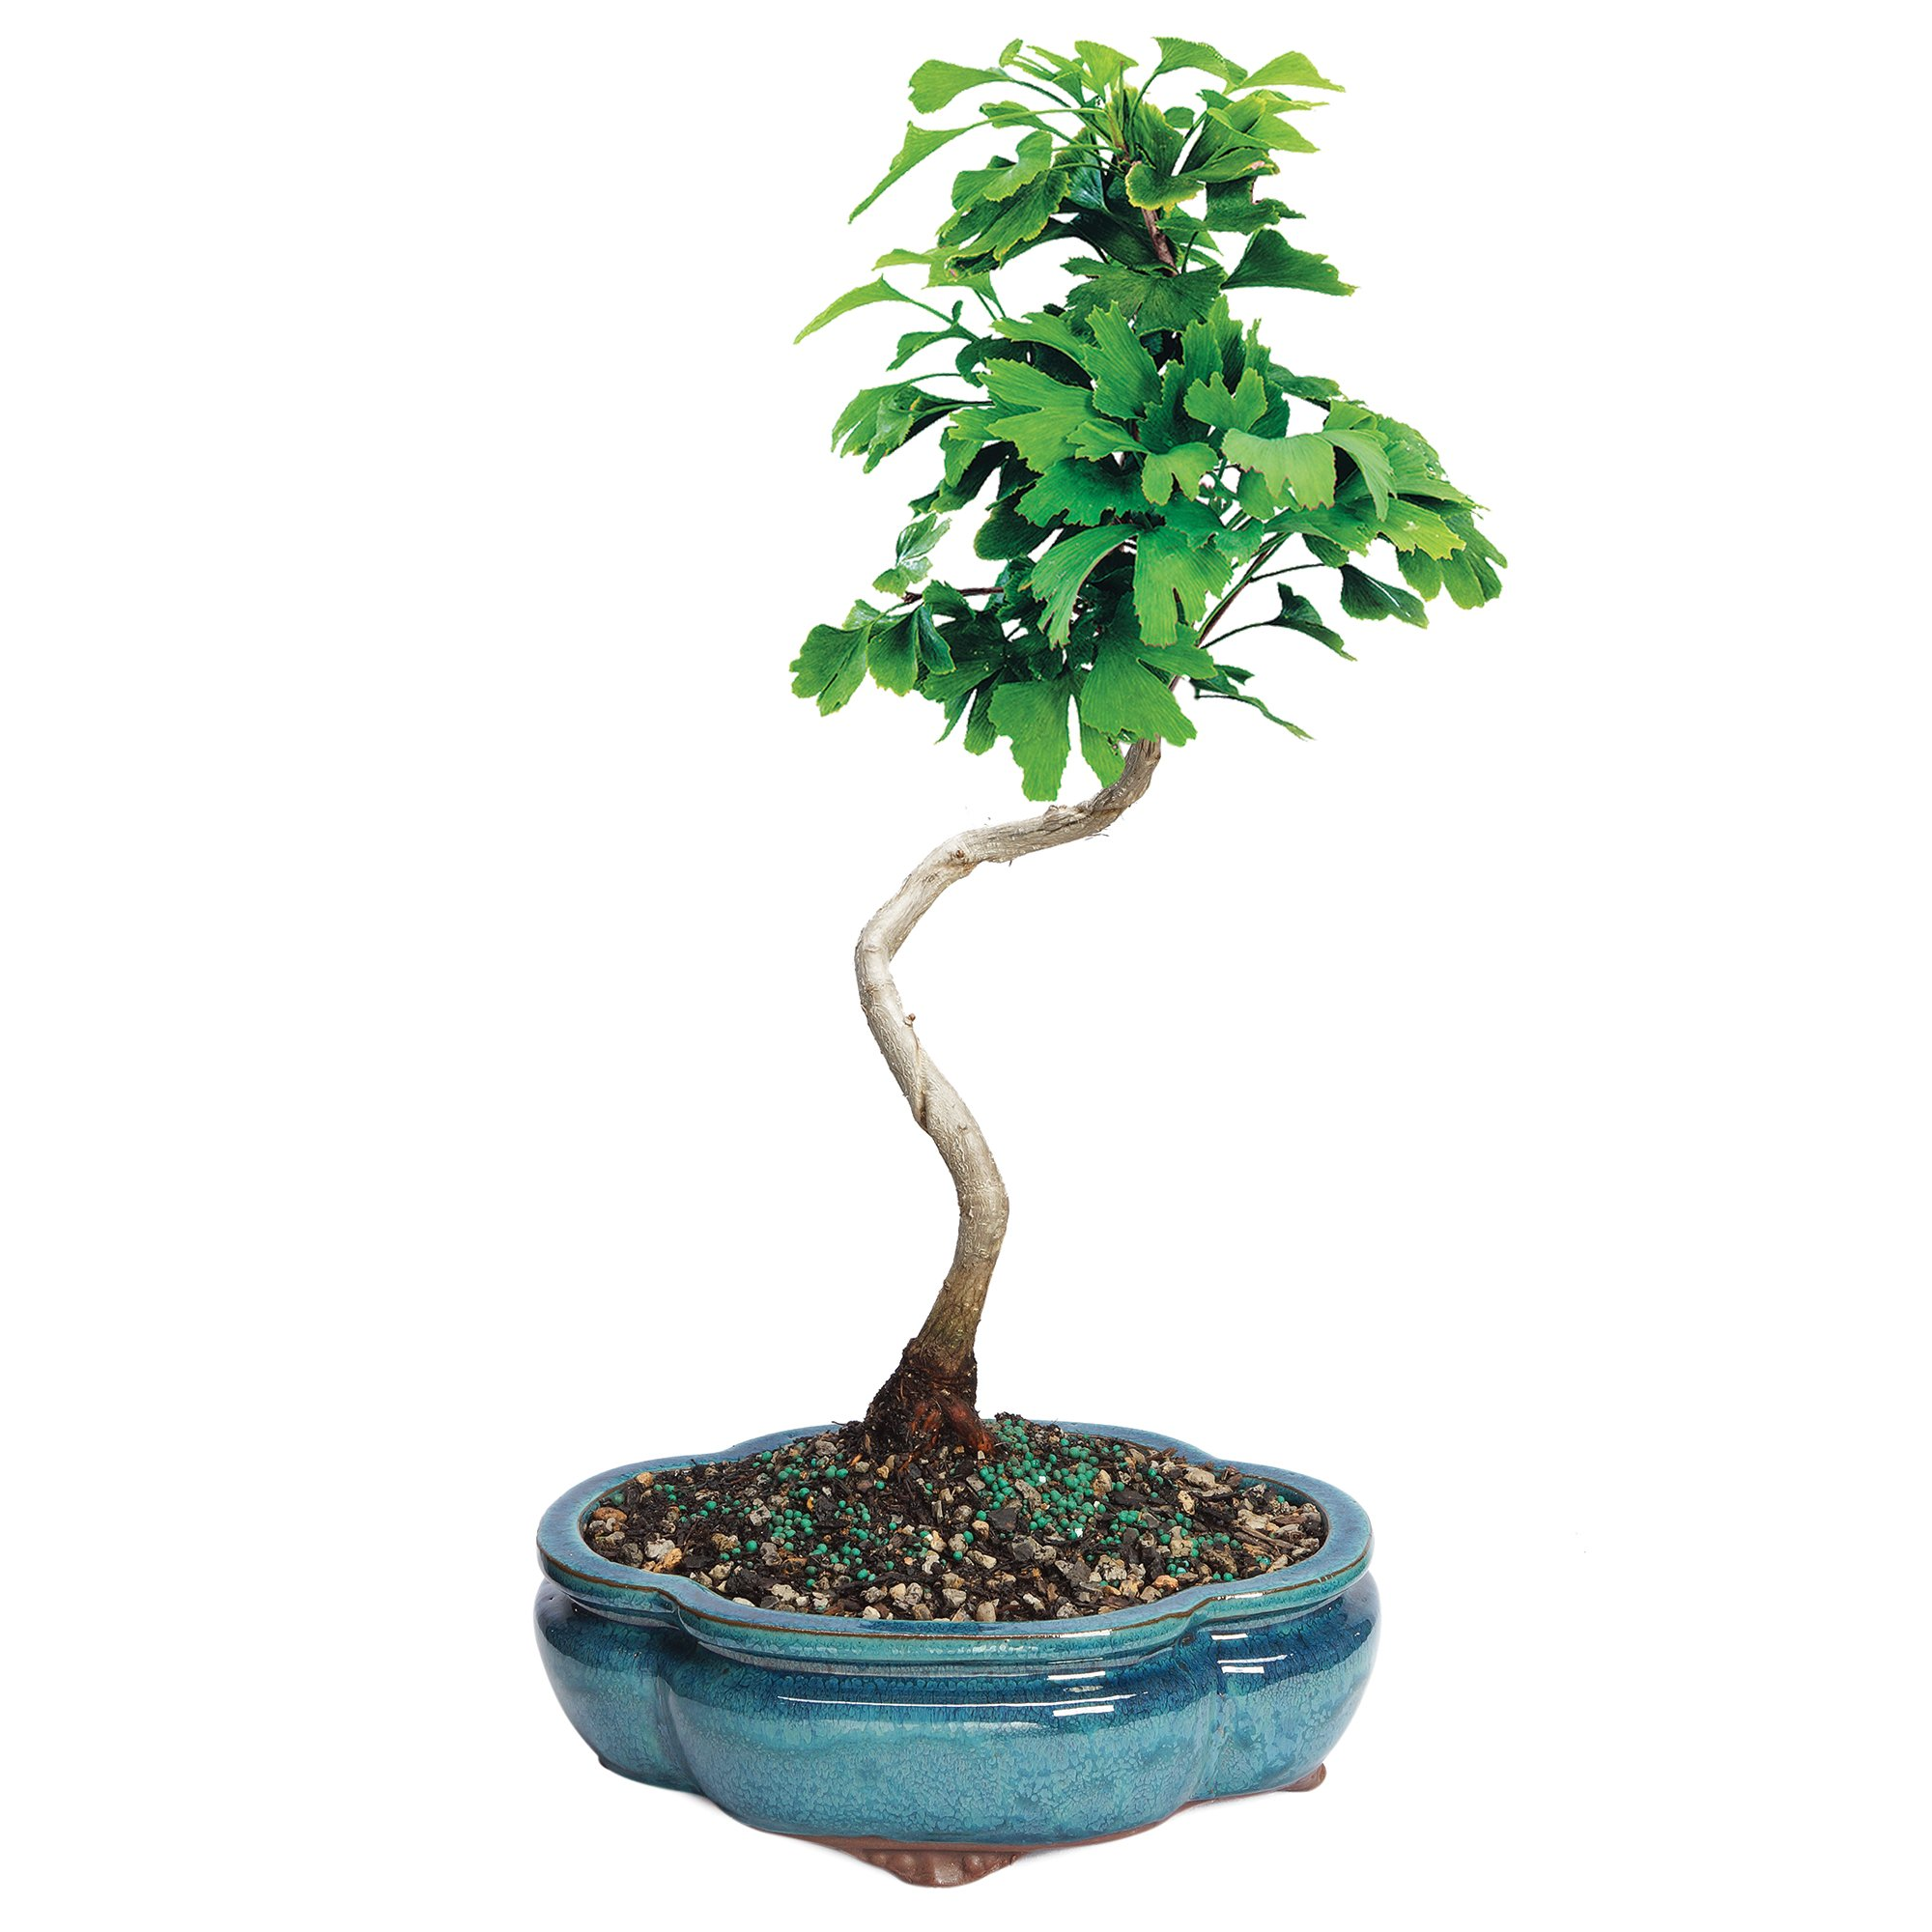 Brussel's Live Ginkgo Outdoor Bonsai Tree - 5 Years Old; 10'' to 12'' Tall with Decorative Container